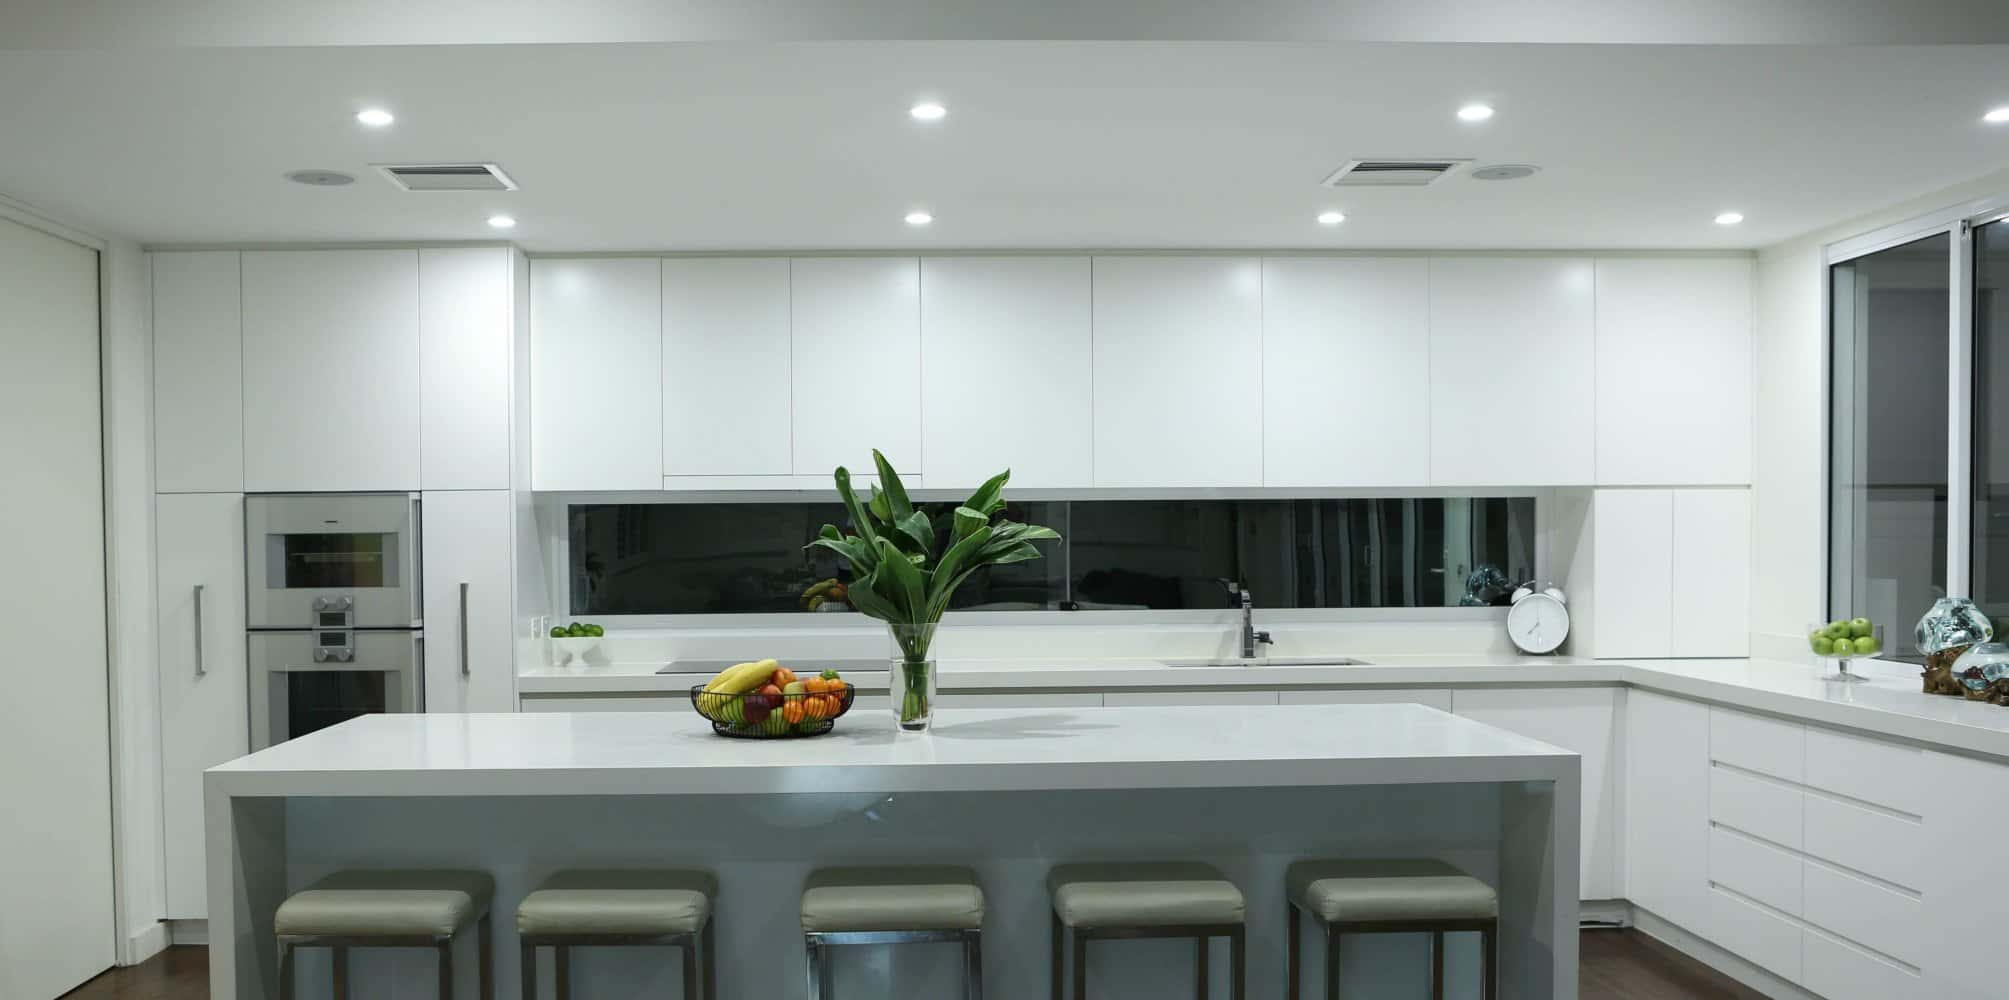 A kitchen in Sydney after an LED upgrade